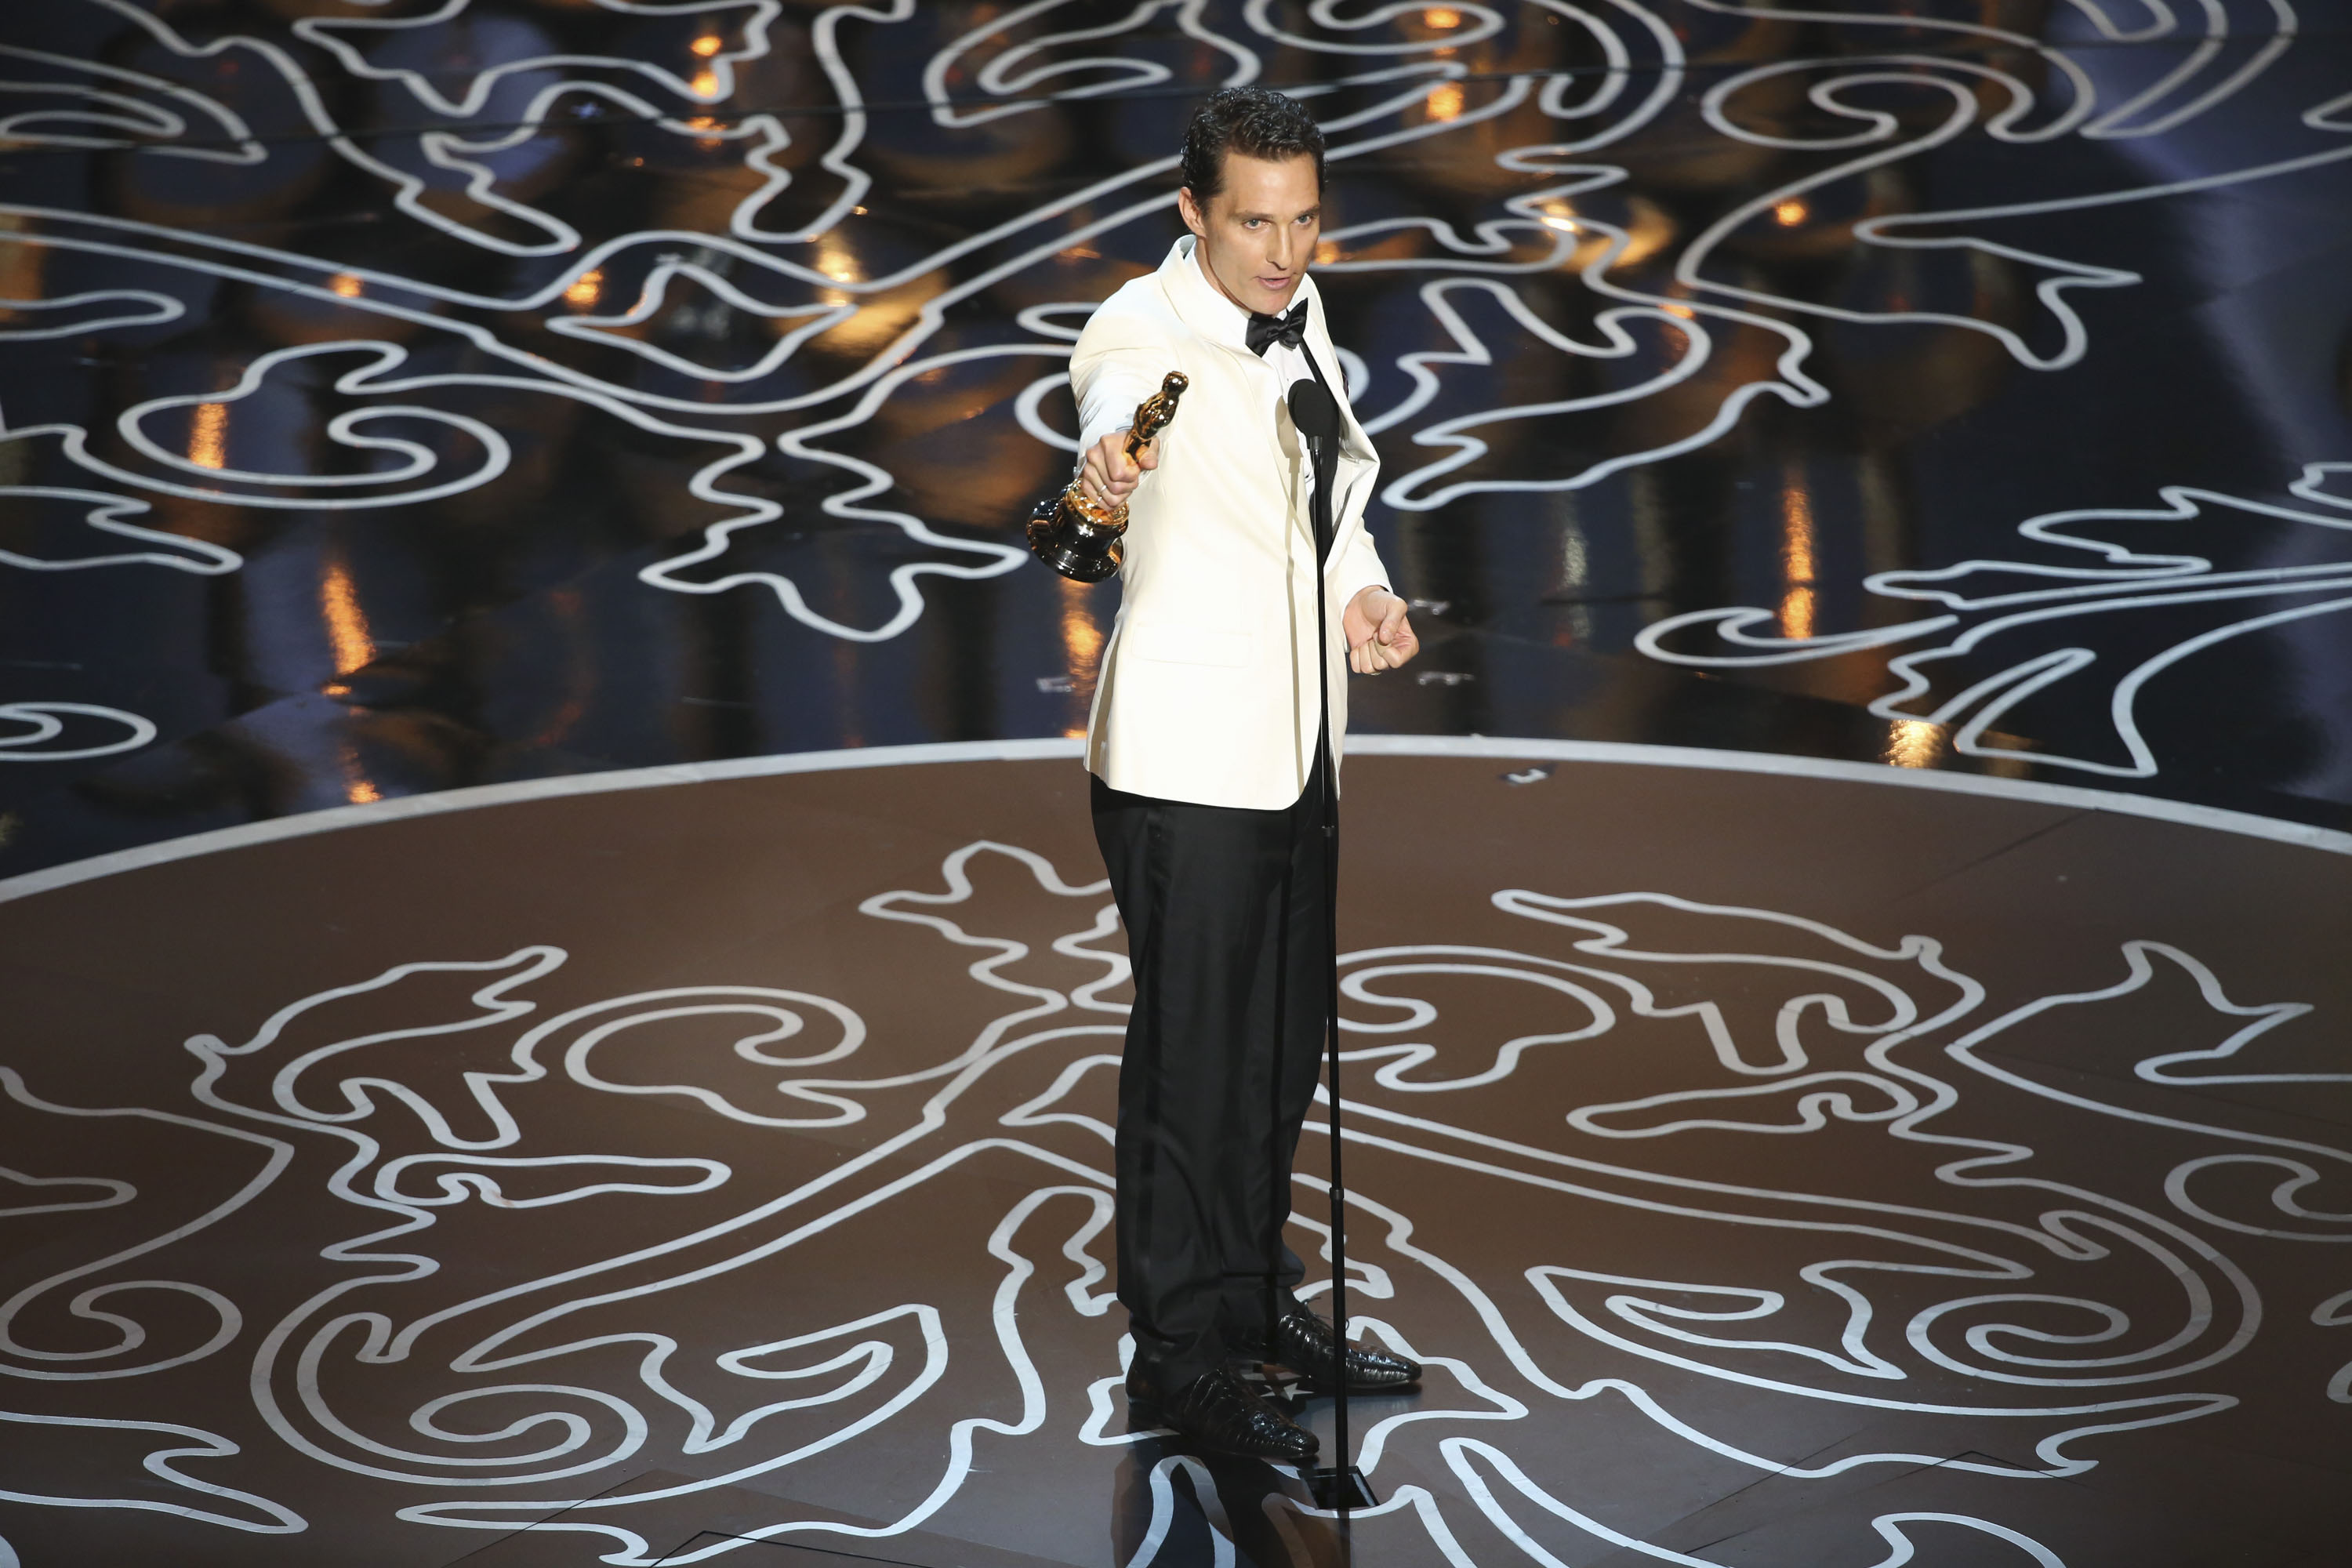 Matthew McConaughey accepts the Best Actor award at the 2014 Oscars